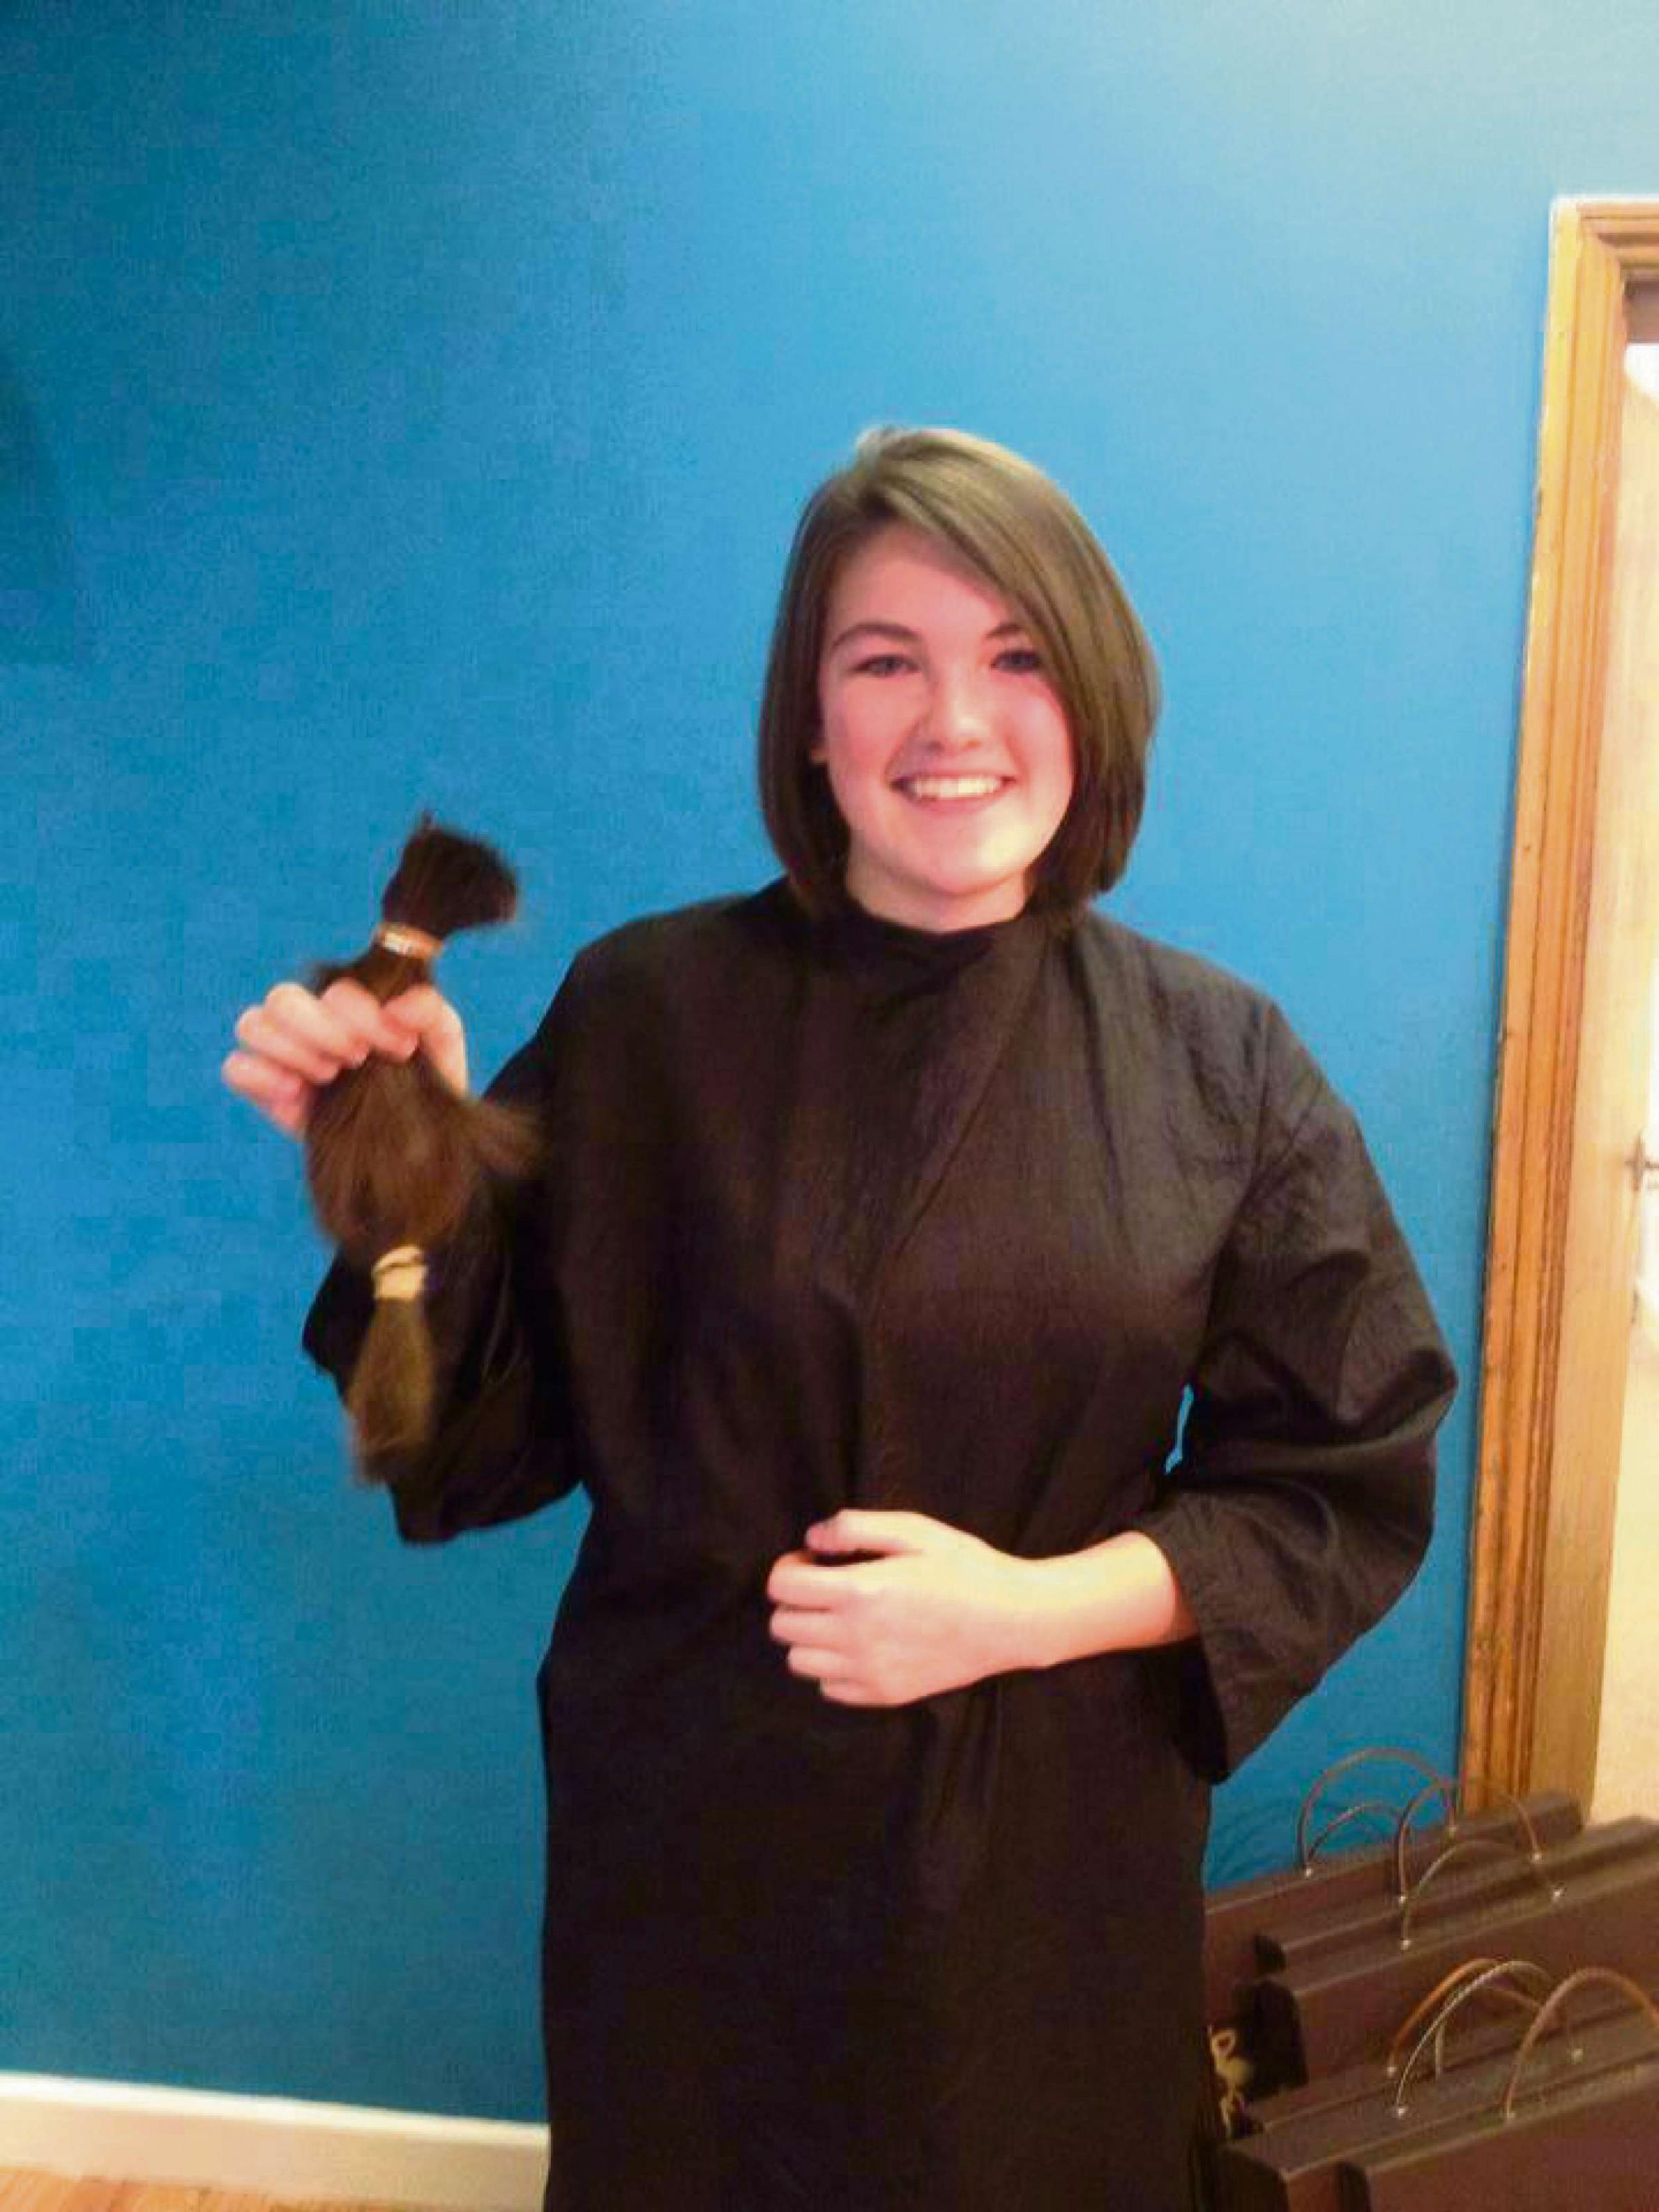 Nina with her new cut. Picture: Carolyn Middleton at Whites Hairdressing.